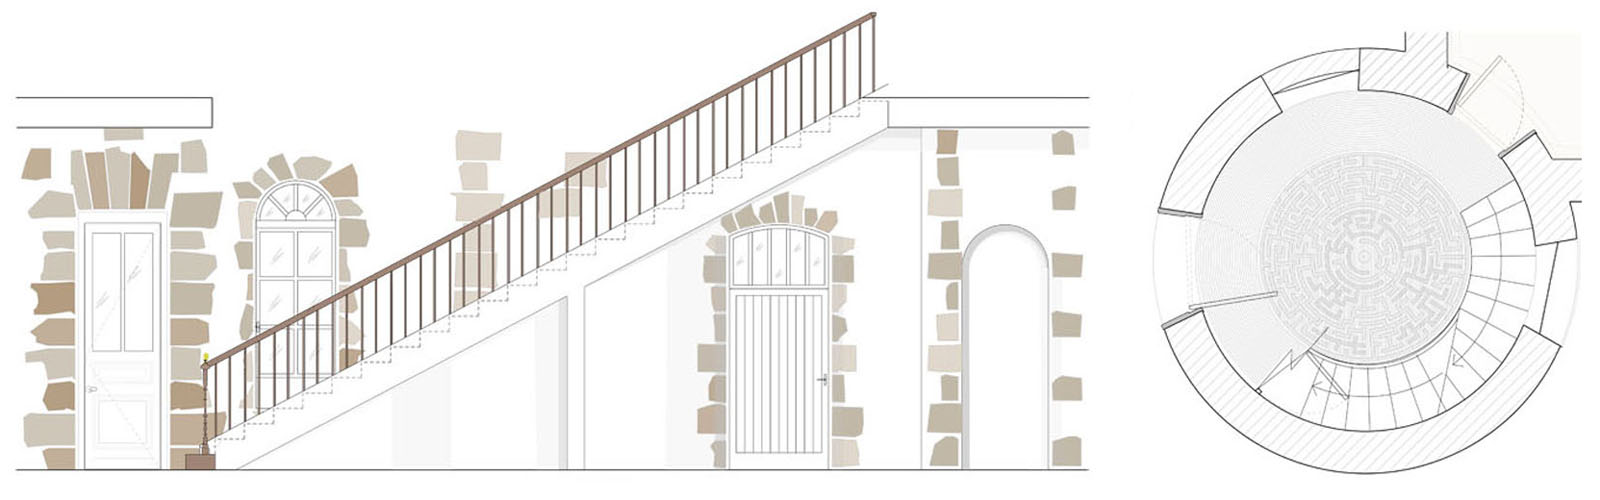 Chateau Refurbishment, proposed entrance